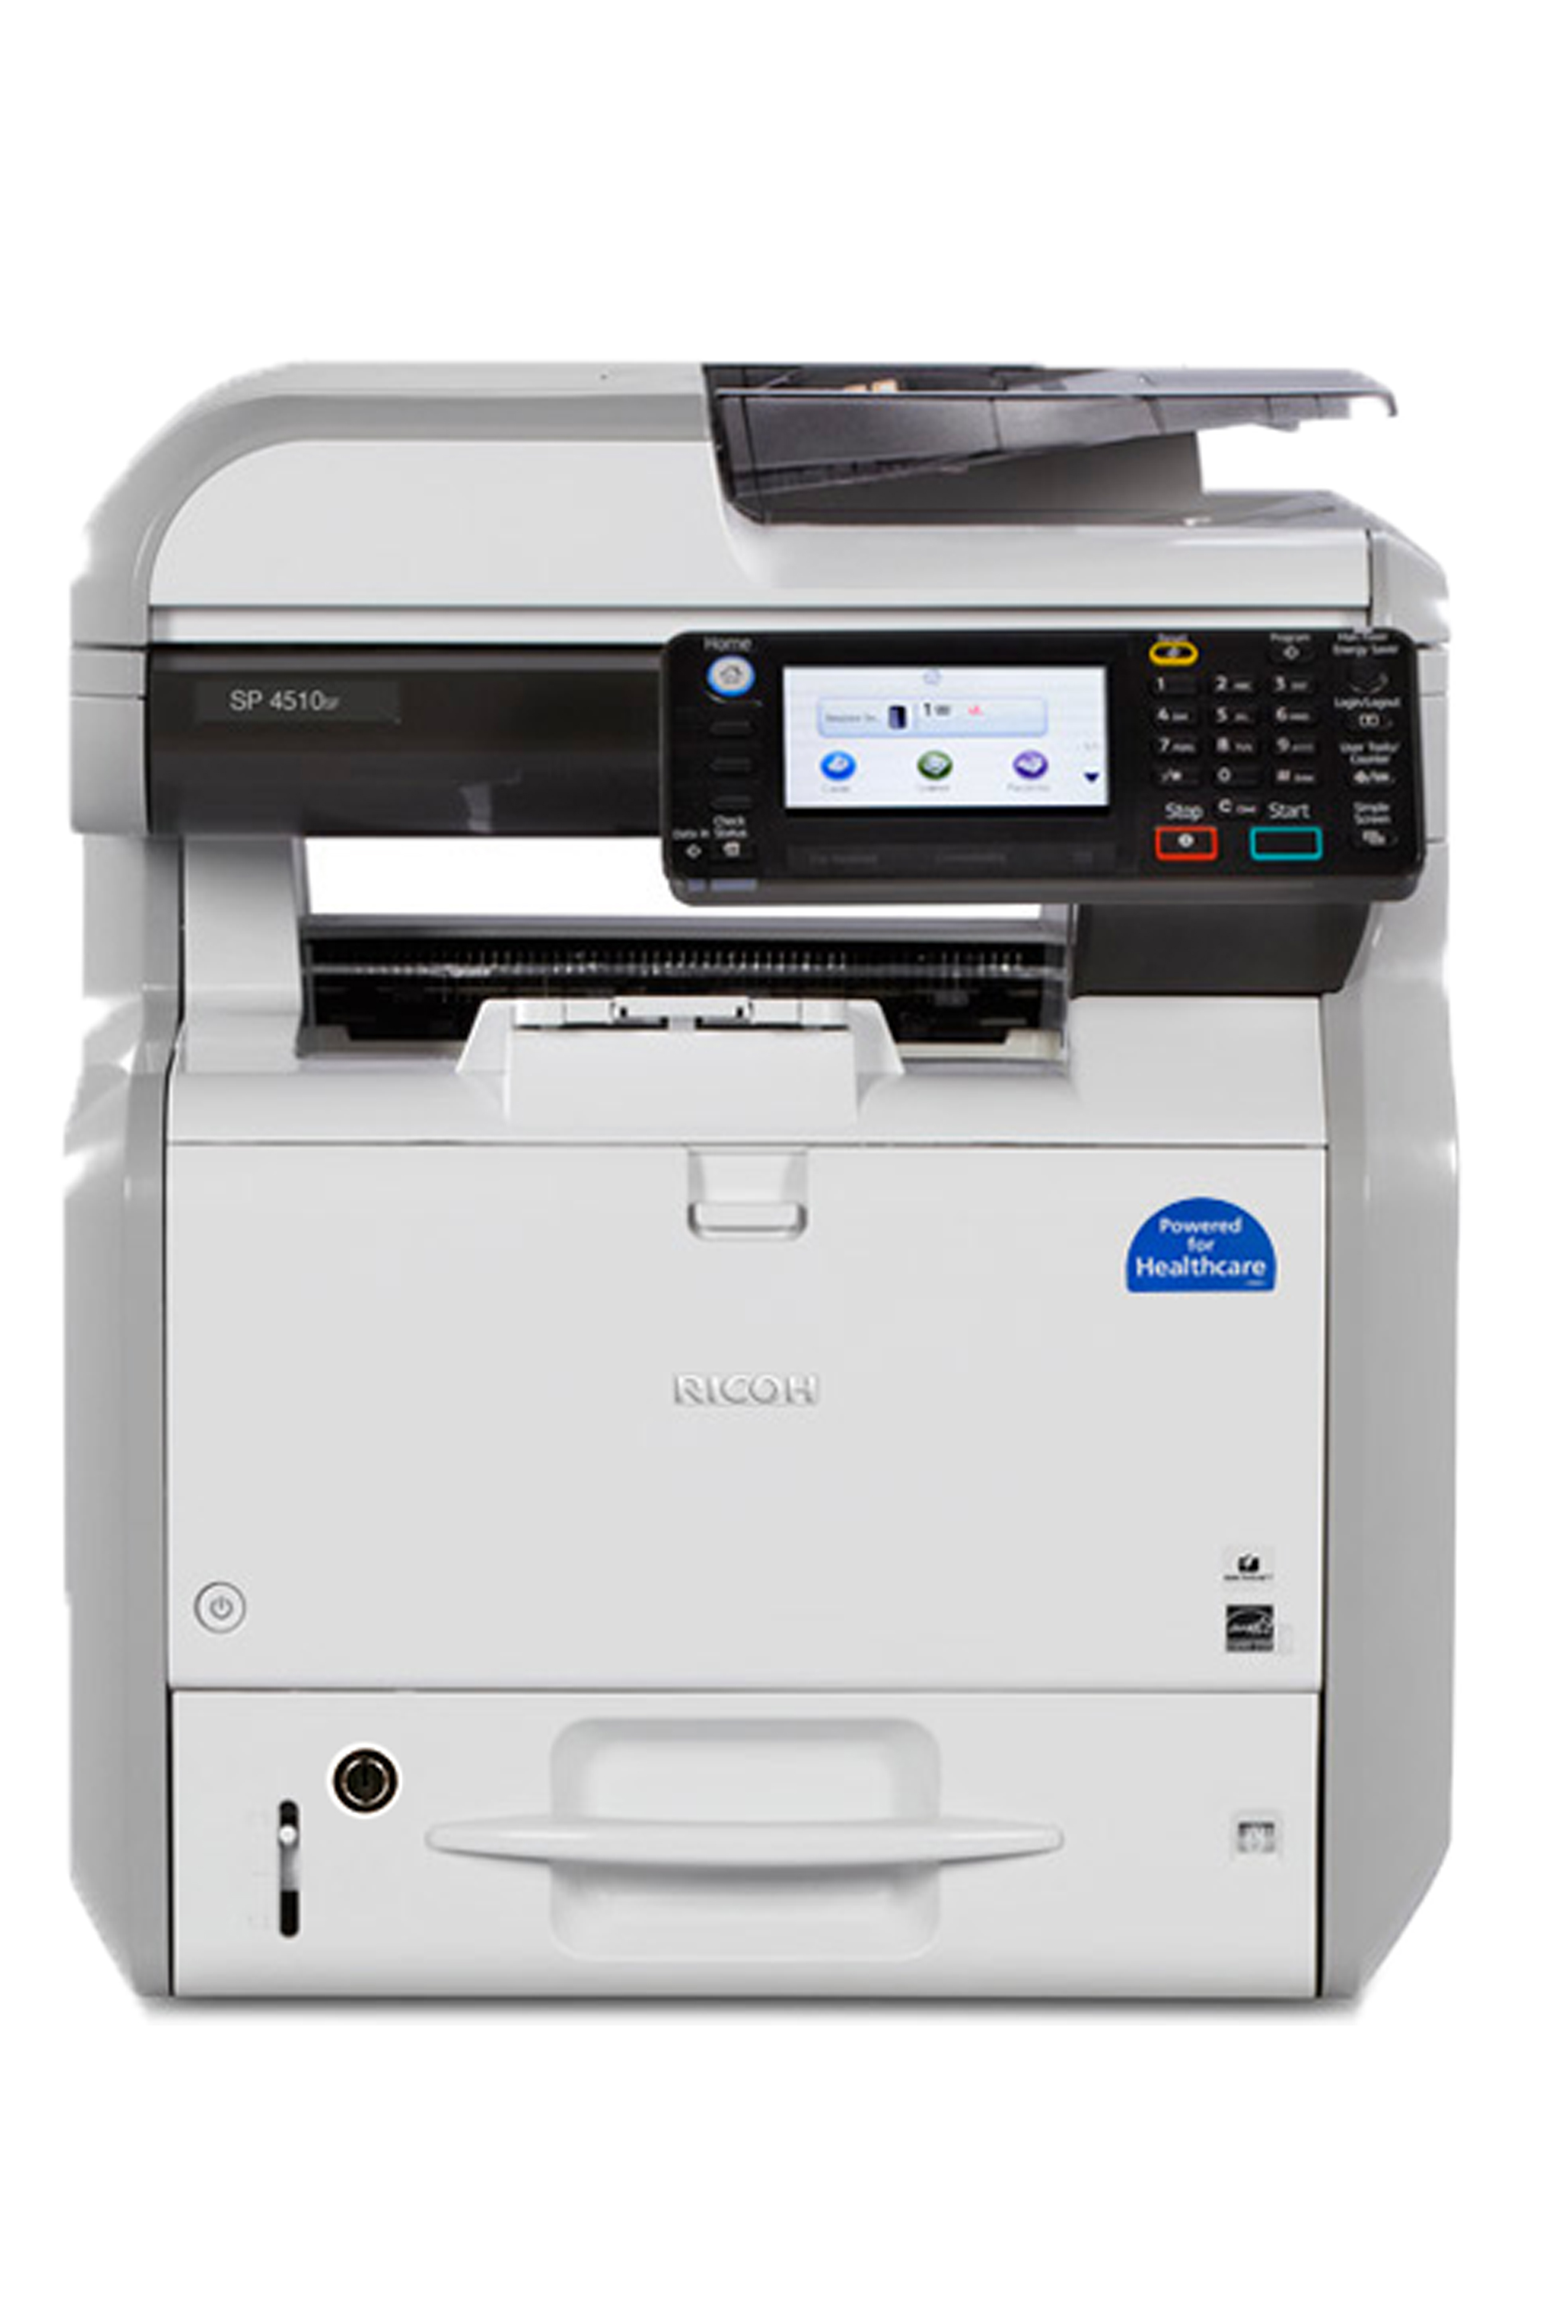 Ricoh SP 4510SFTE Black and White Multifunction Printer (42ppm)